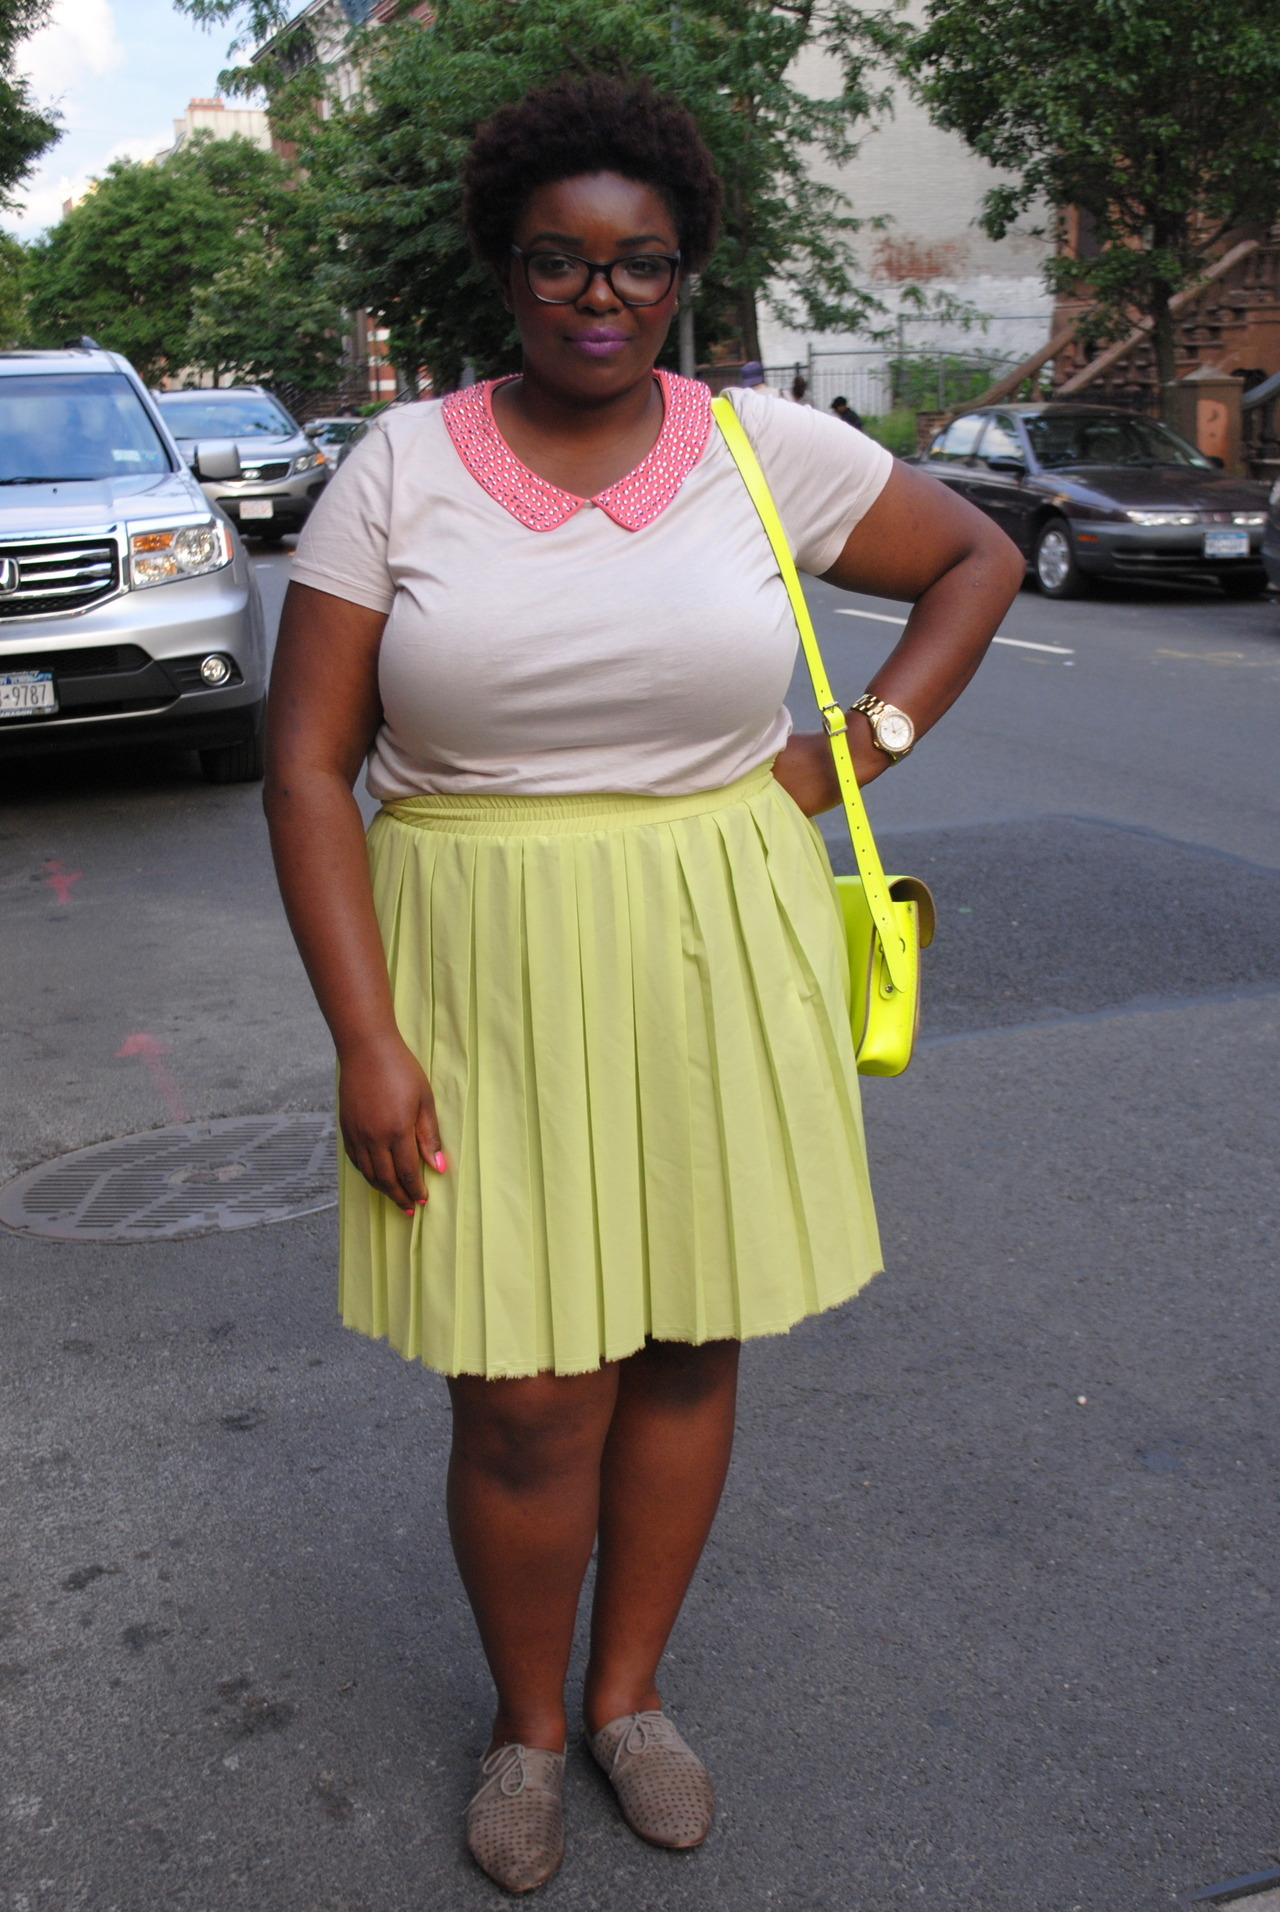 chubby-bunnies:  lipstickhipsandheels:  favorite outfit of life alert! I'm such a nerd. top: h&m skirt: anthropologie shoes: urban outfitters (brand idk)  Oh so lovely!